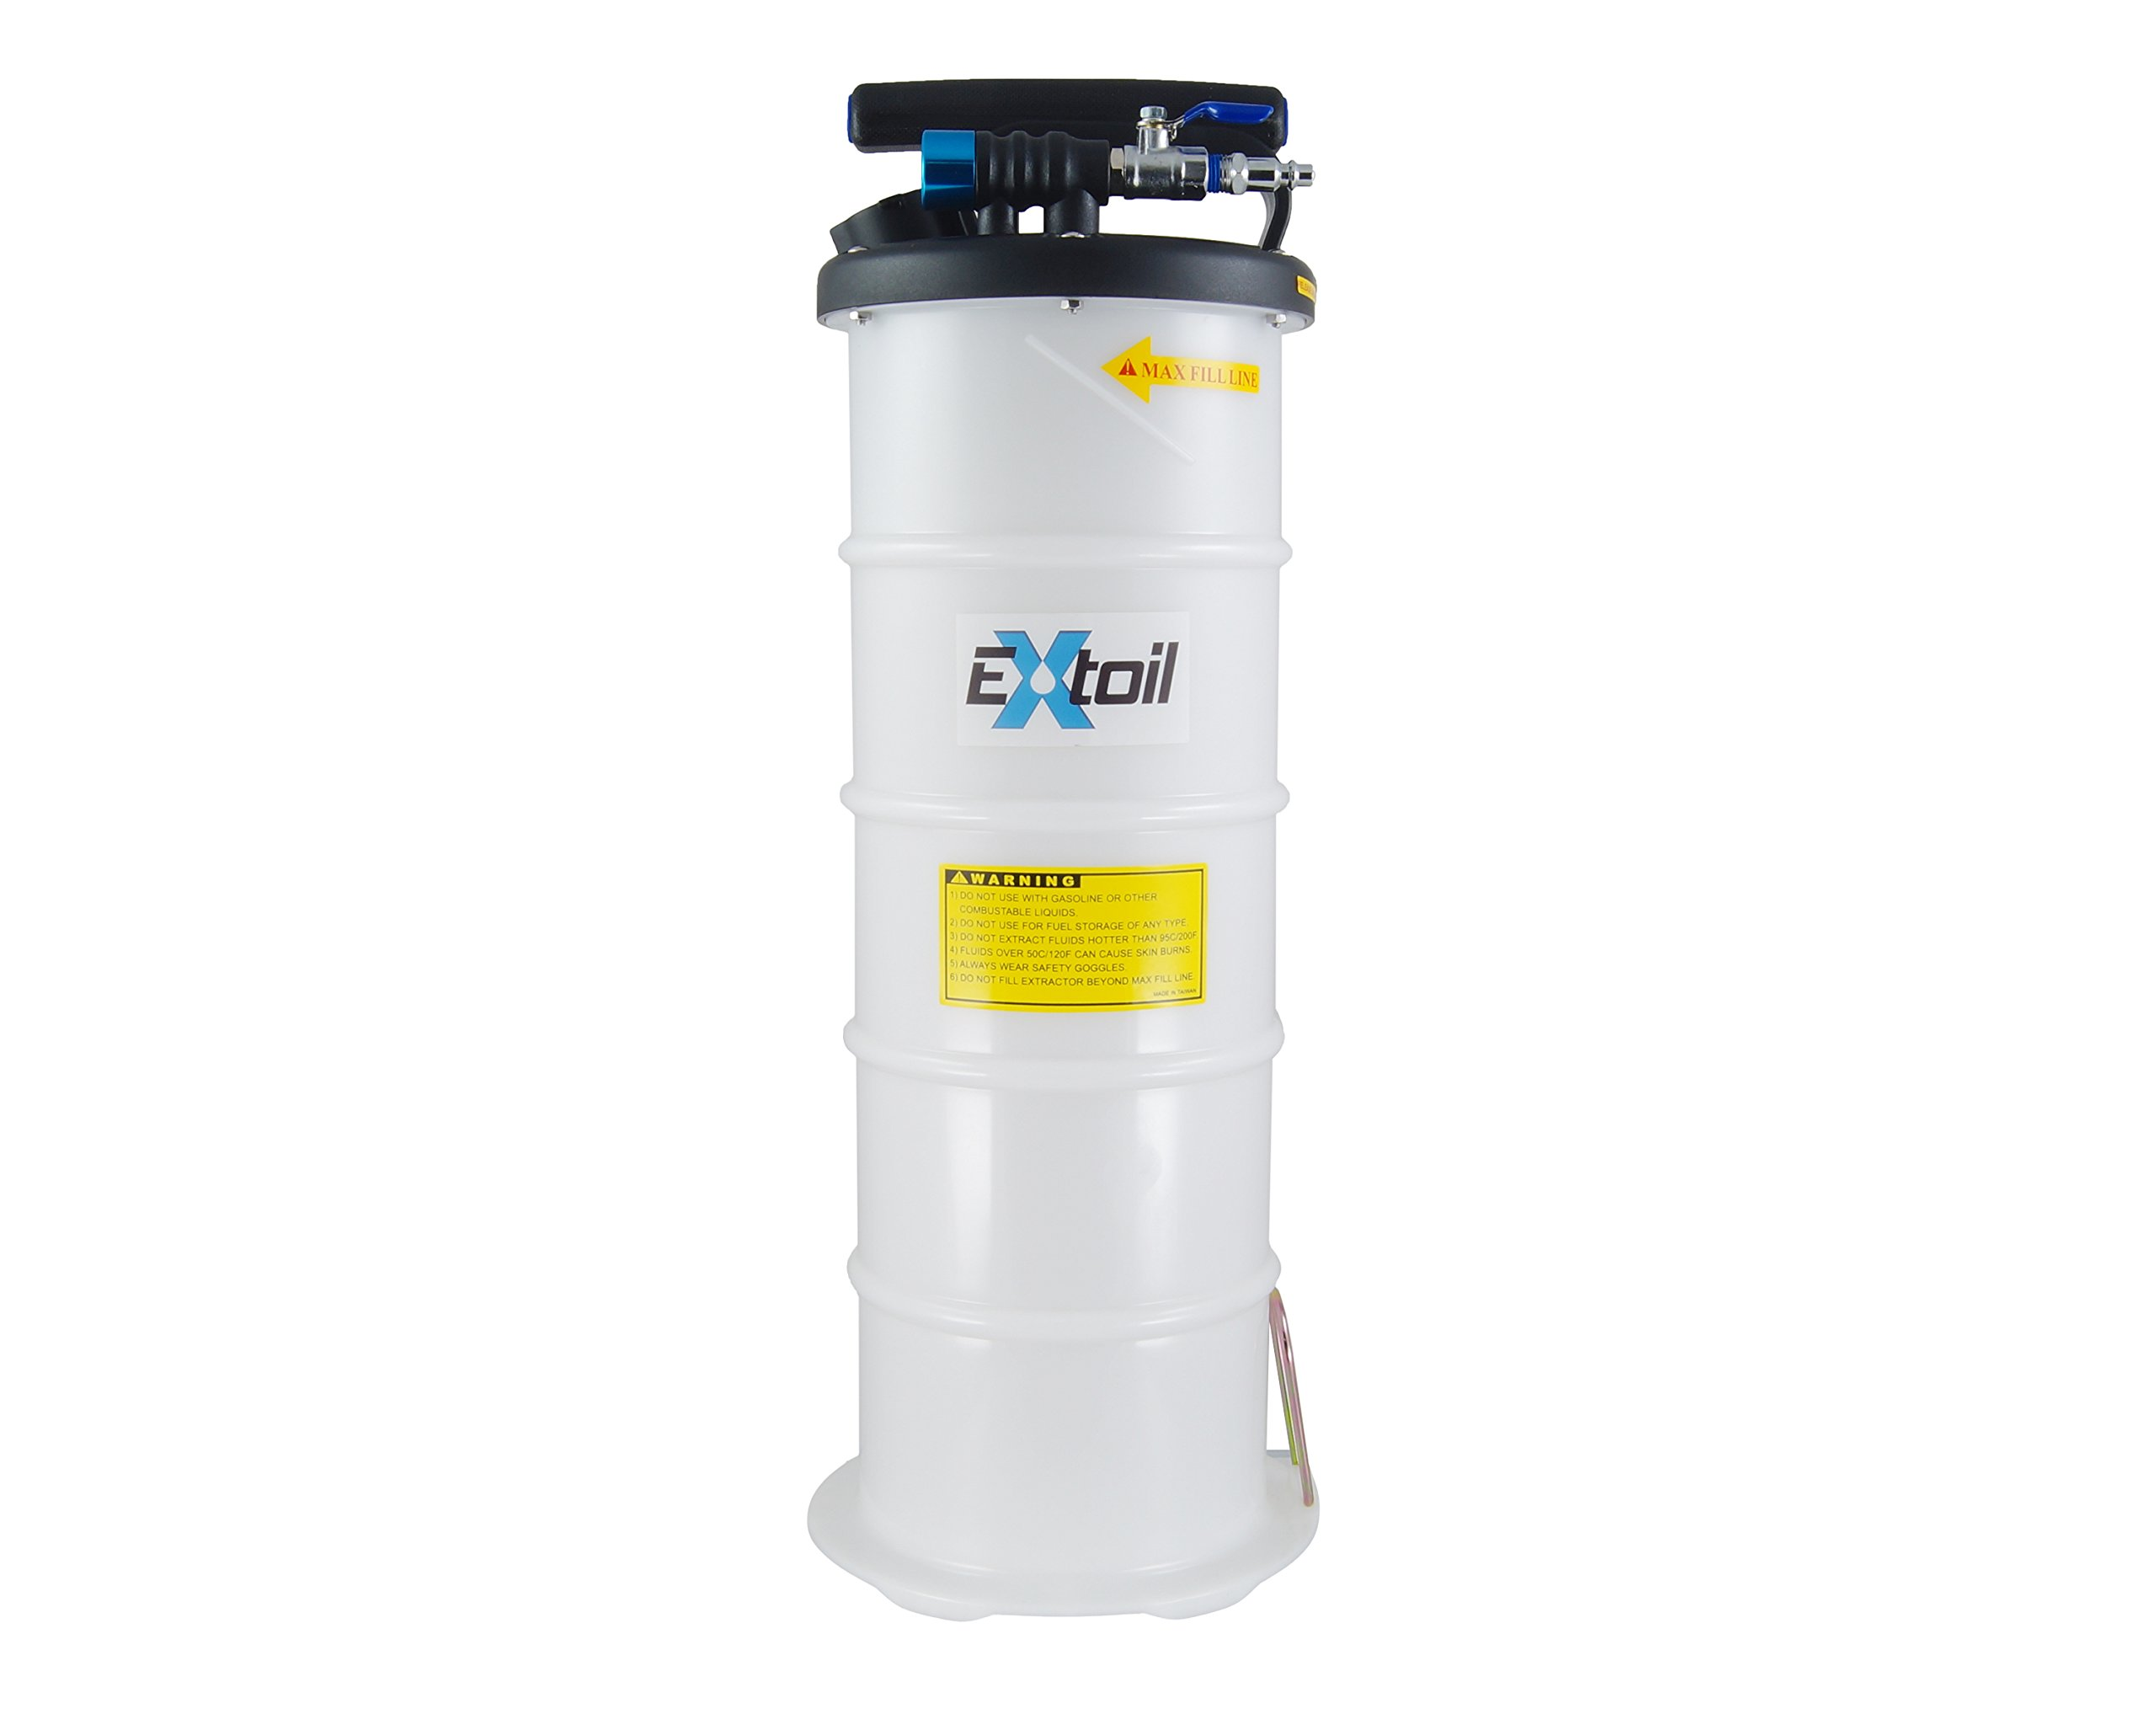 EXtoil 6 Liter Professional Manual/Pneumatic Oil Extractor by EXtoil (Image #1)